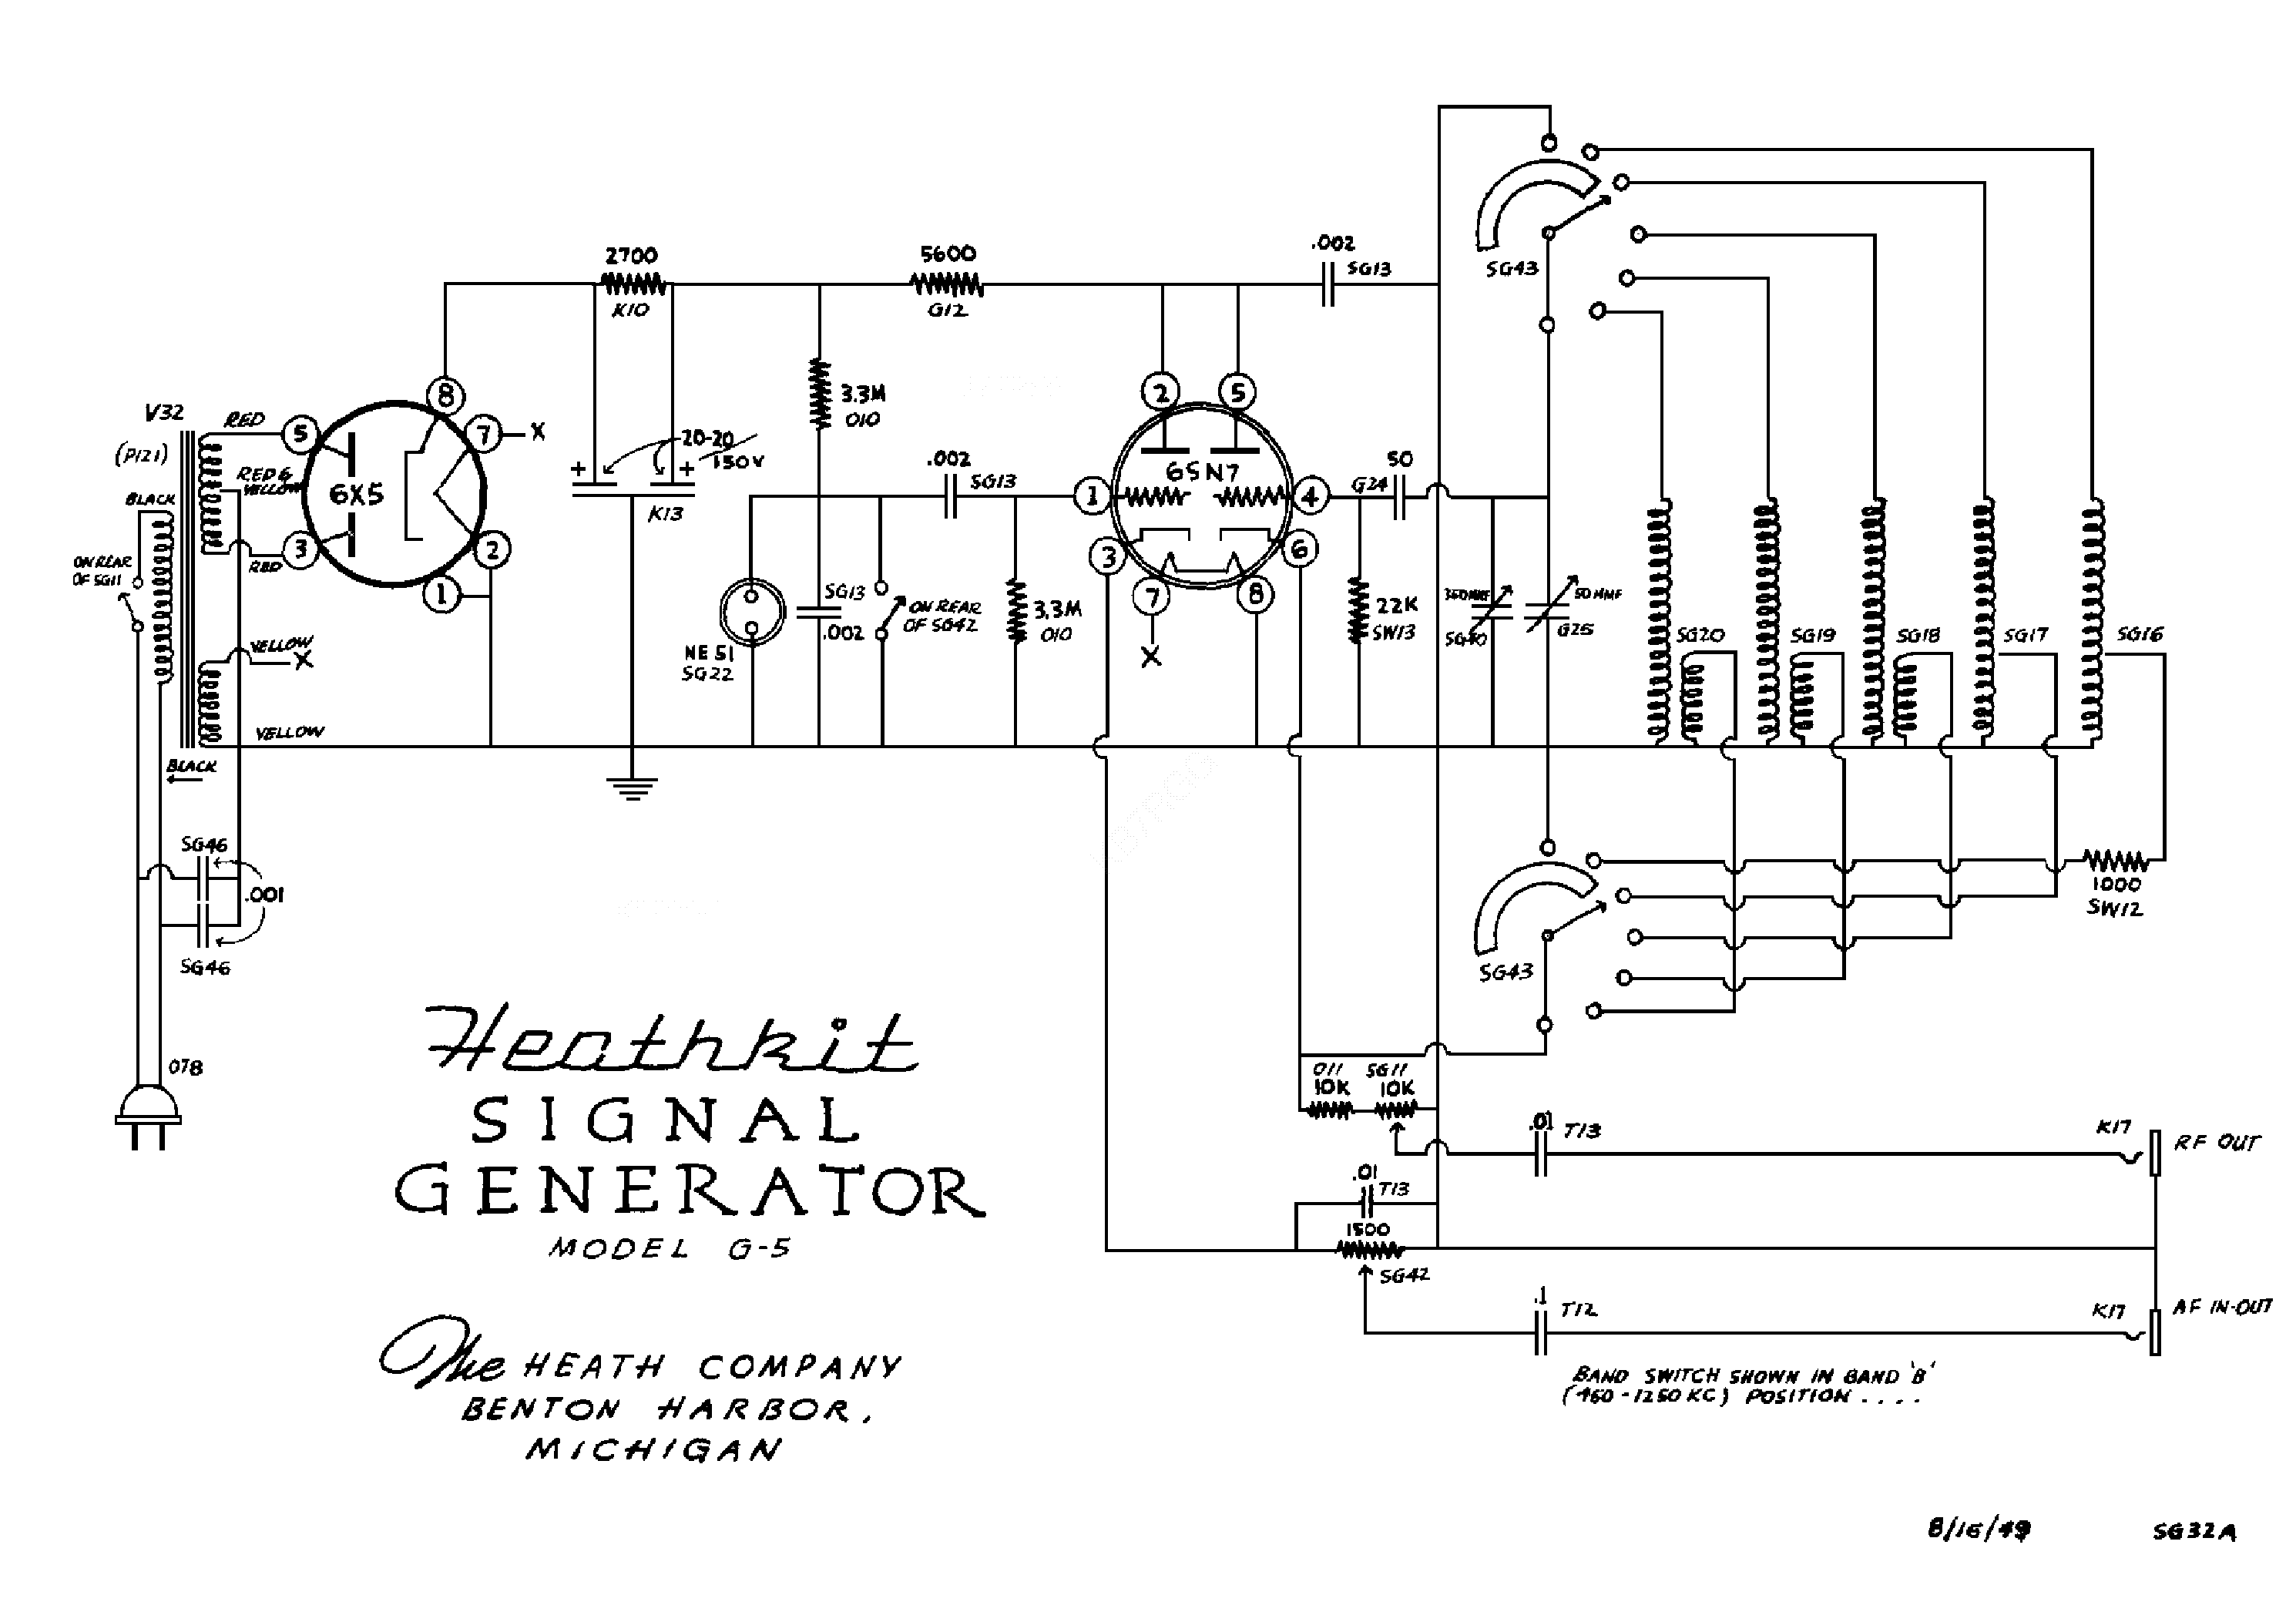 Signal Generator Schematic Wiring Library Current Amplifier Circuit Diagram Tradeoficcom Heathkit G5 Sch Service Manual 1st Page